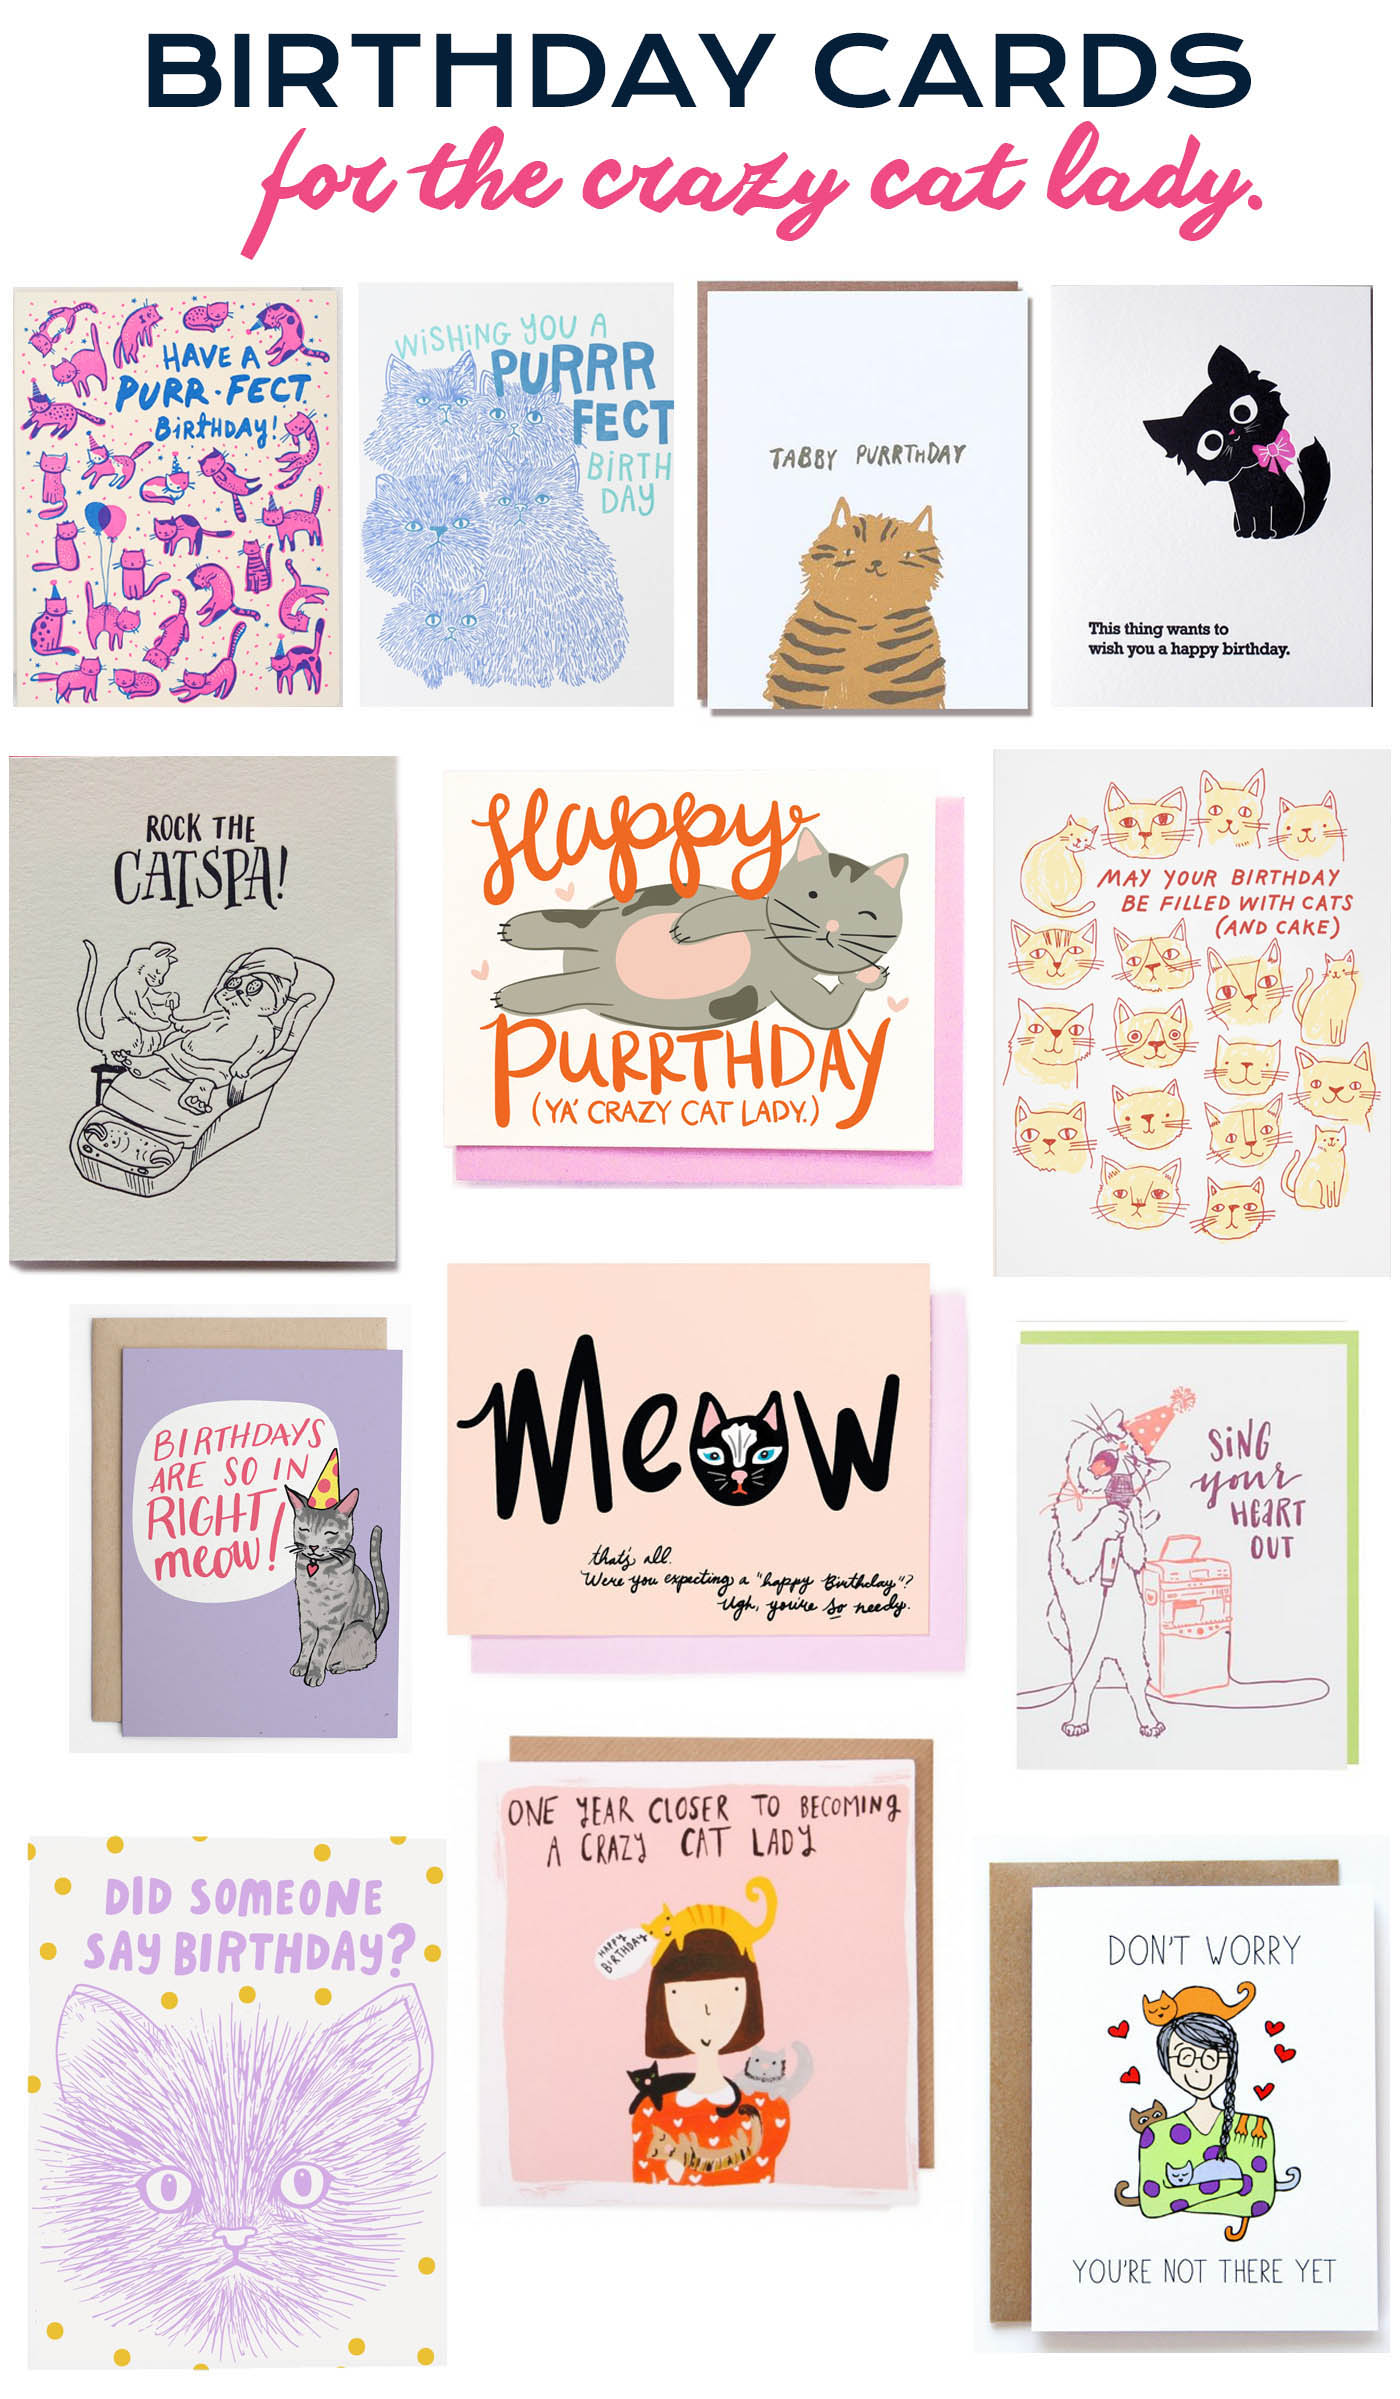 Birthday cards for the crazy cat lady Choosing Figs – Lady Birthday Cards